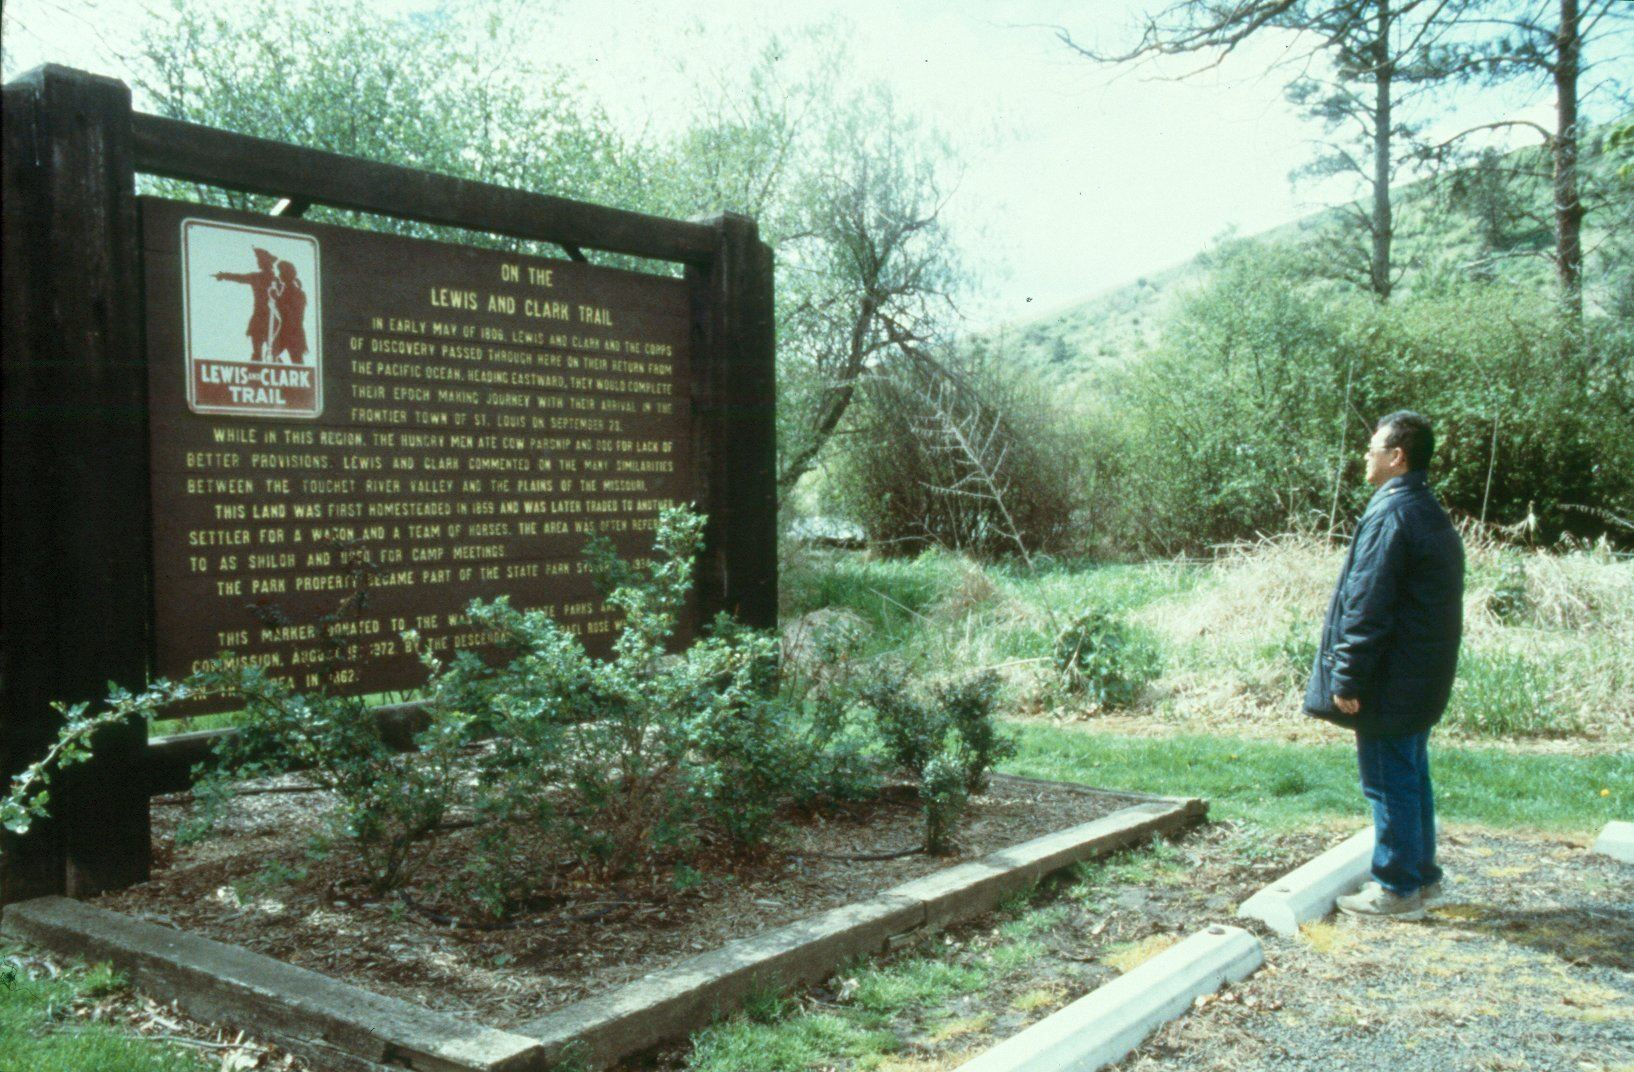 Lewis and Clark Trail interpretive sign